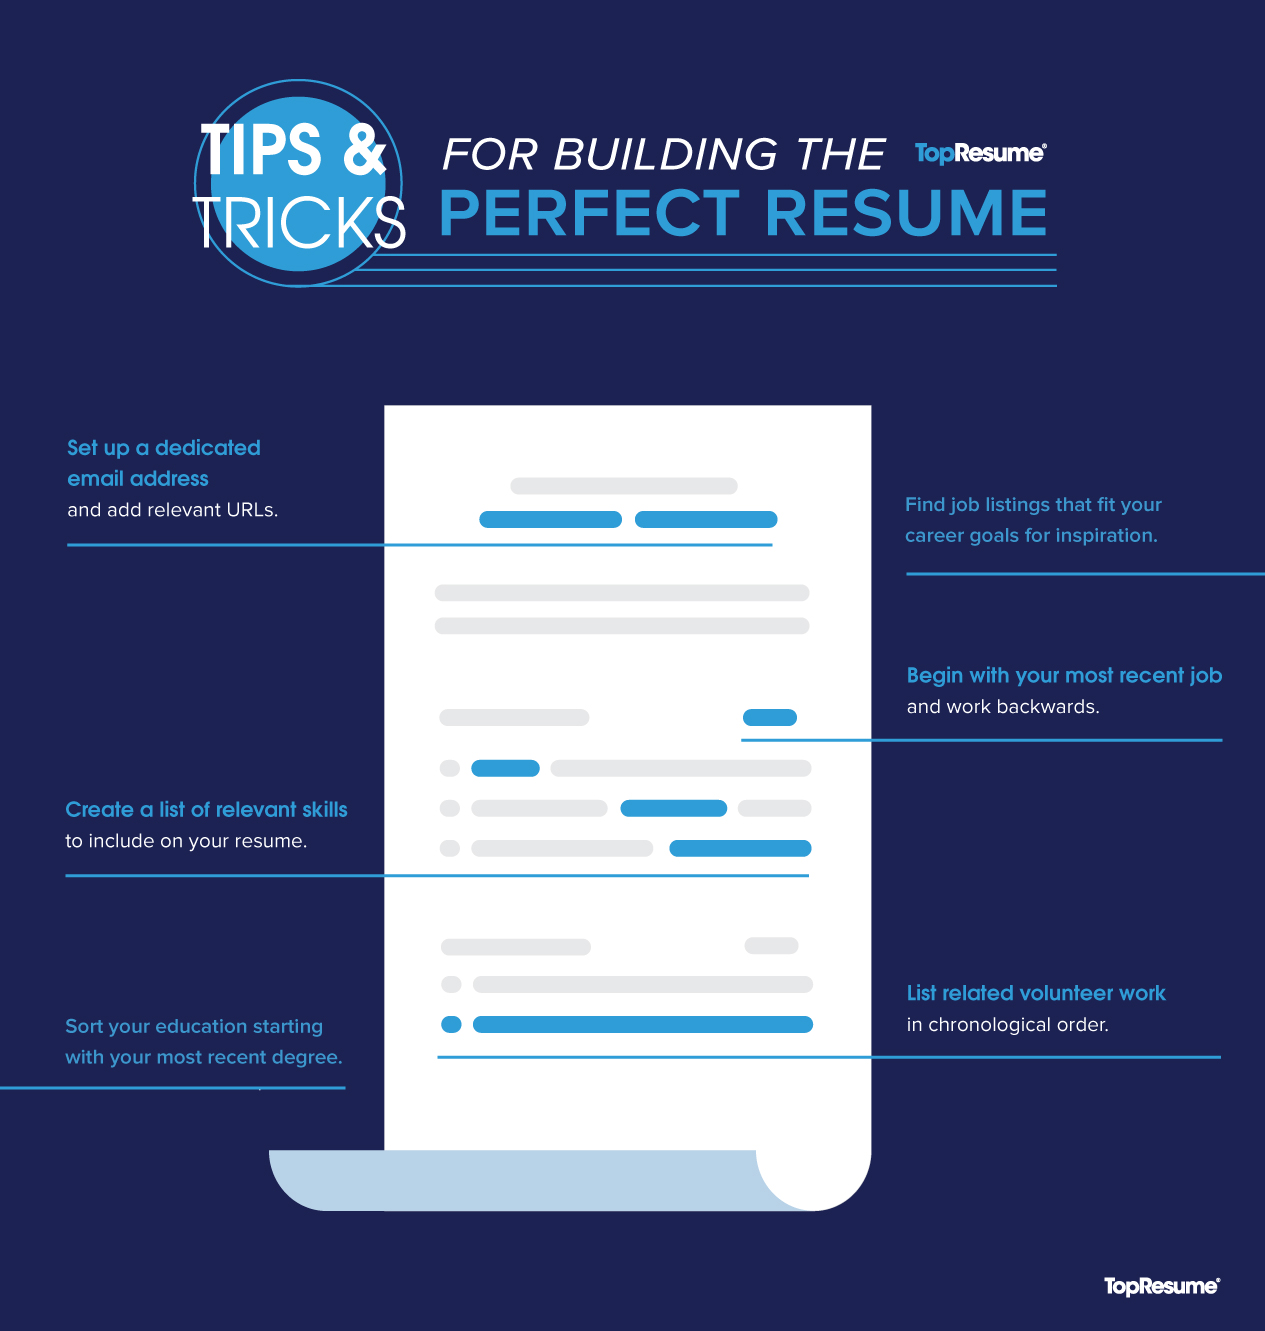 steps to writing the perfect resume topresume build an awesome 11stepsinfographic web Resume Build An Awesome Resume